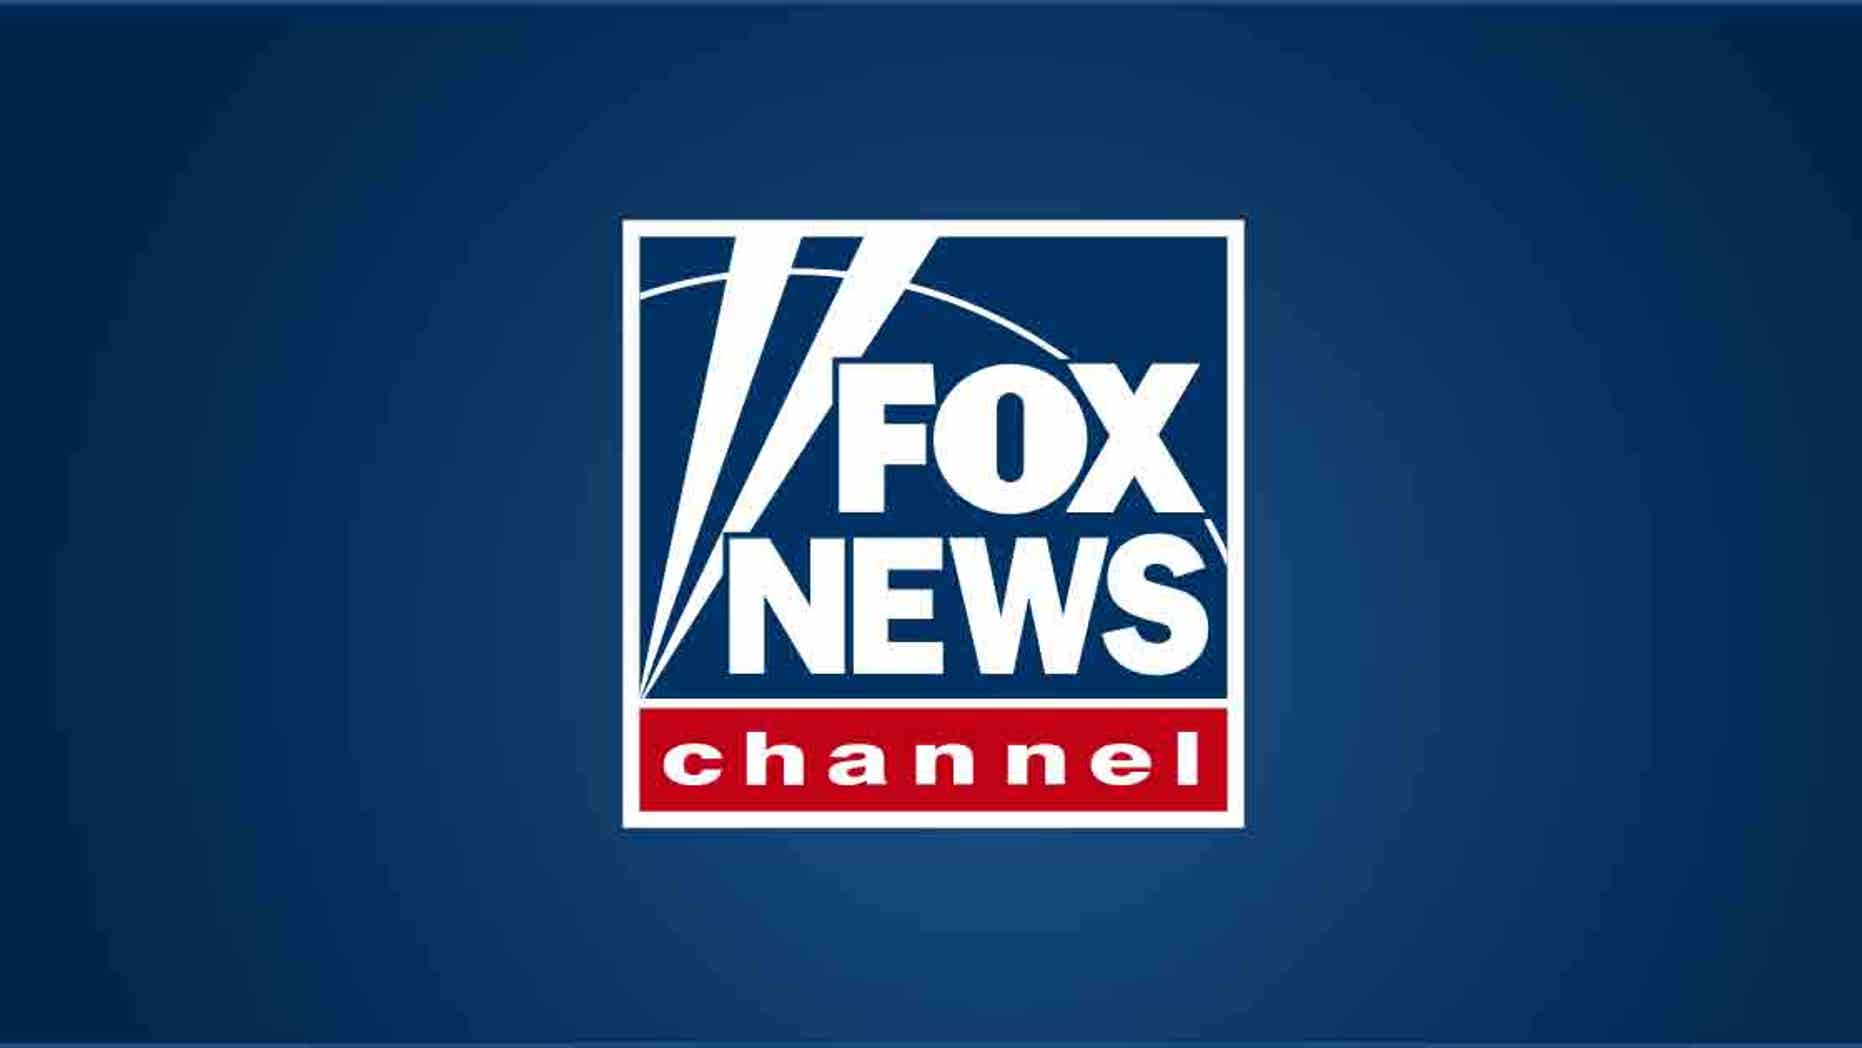 Westlake Legal Group fox-news-channel-logo Today on Fox News, Aug. 13, 2019 fox-news/media fox-news/entertainment/media fox news fnc/media fnc feefb9b7-61ce-5fcc-a5ca-df659ab5b9ae article